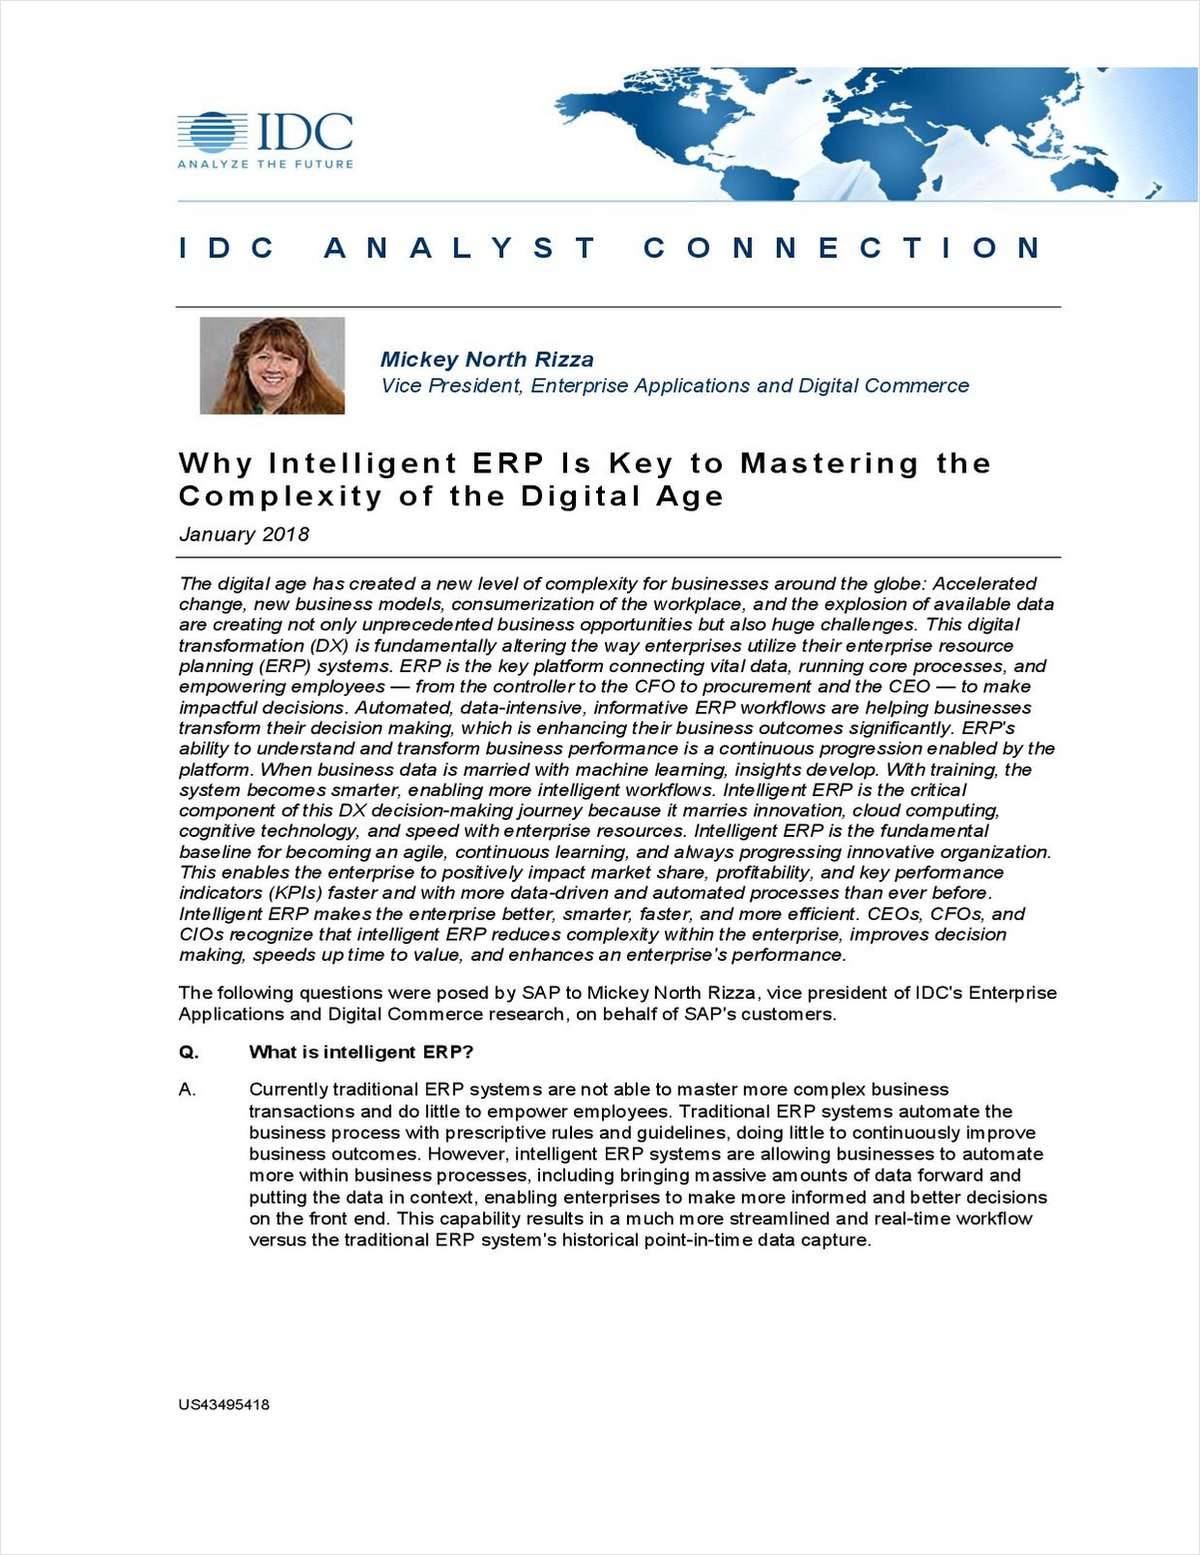 Why Intelligent ERP Is Key to Mastering the Complexity of the Digital Age